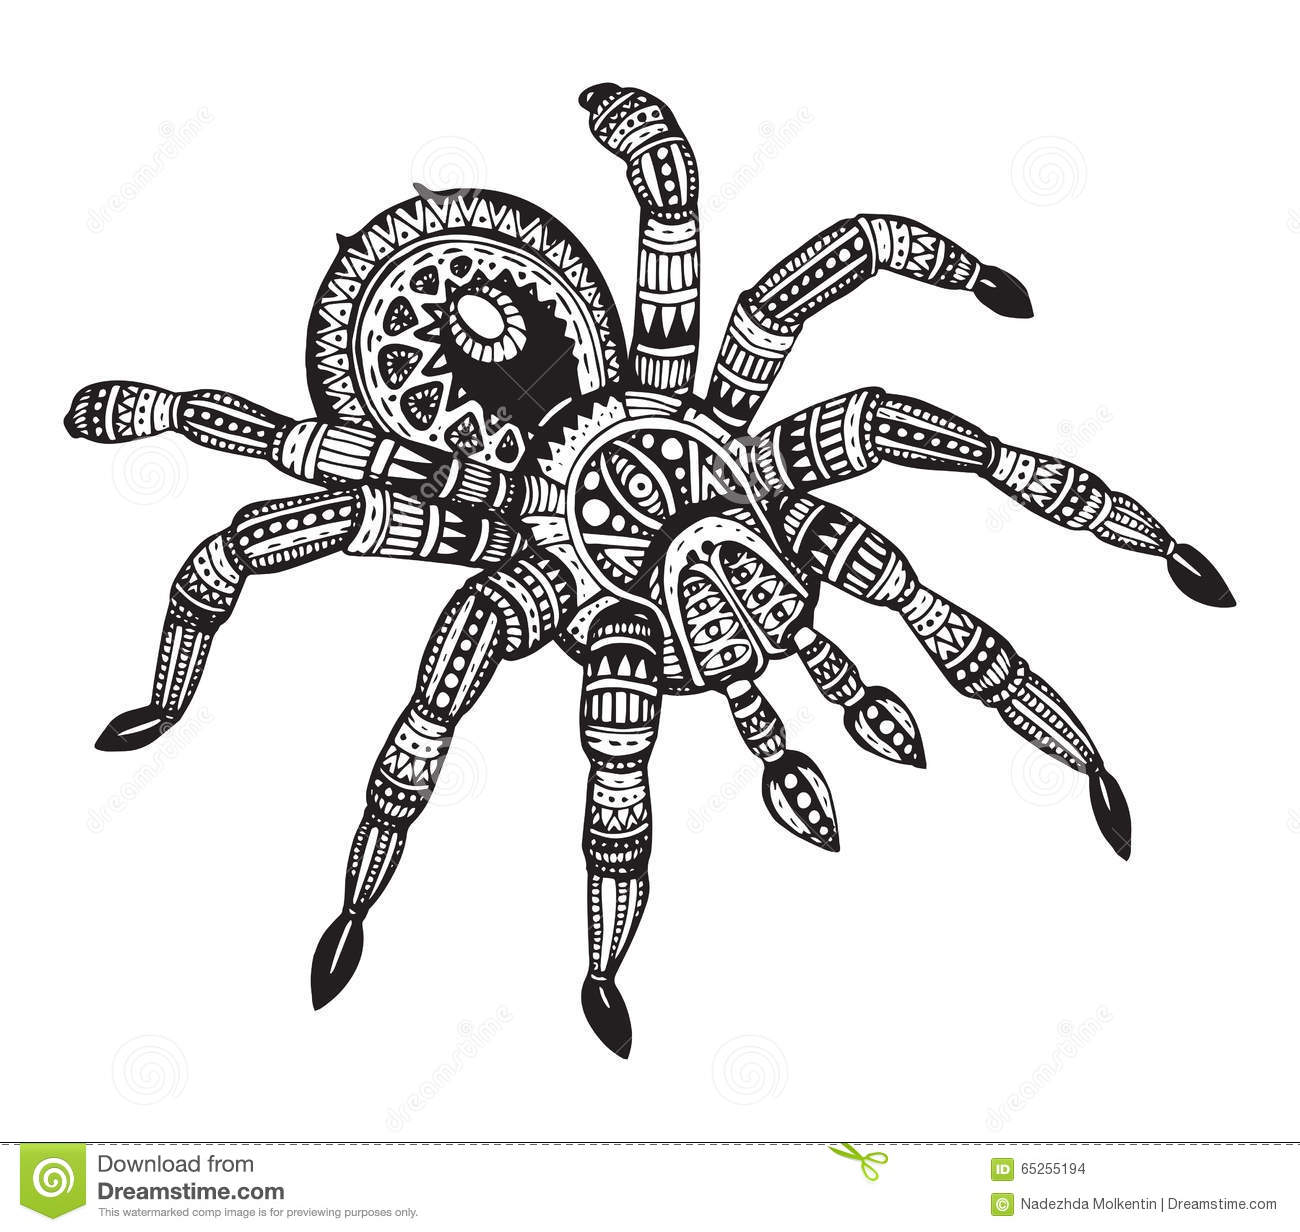 Gallery Giant Wolf Spider besides Greats Tribal Tatoo Designs 151 175 in addition Spider further Spider Diagrams To Print further Spider Web Coloring Pages. on tarantula spider